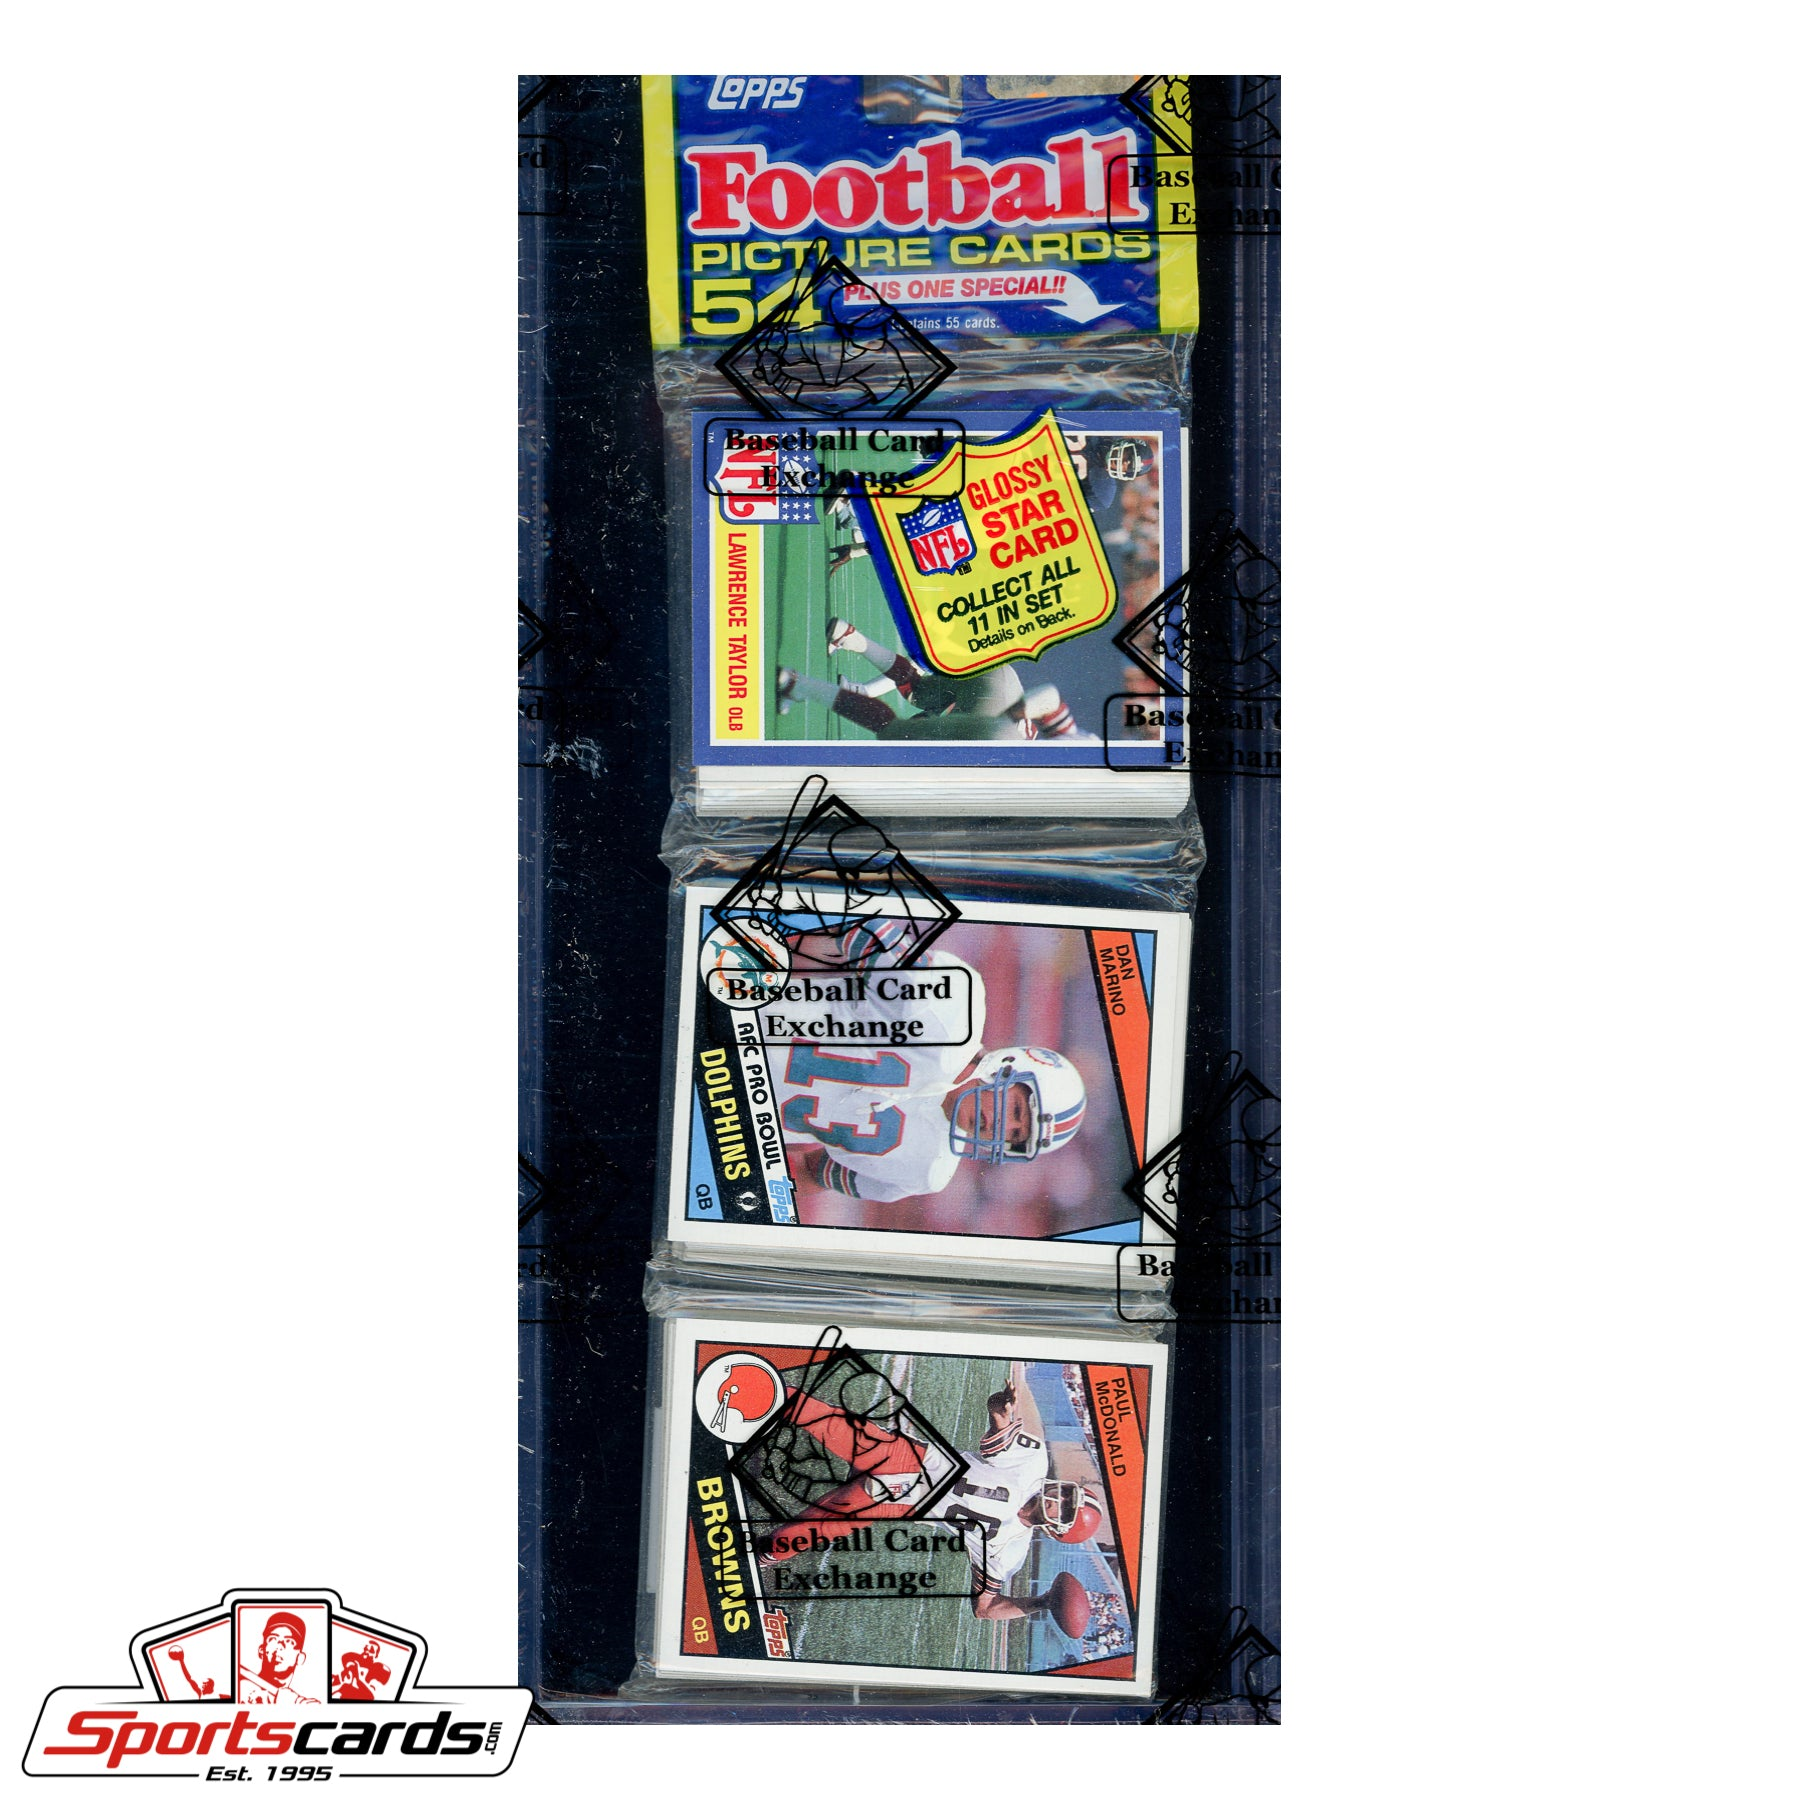 1984 Topps Football Rack Pack BBCE Certified w/ Dan Marino RC on Top!